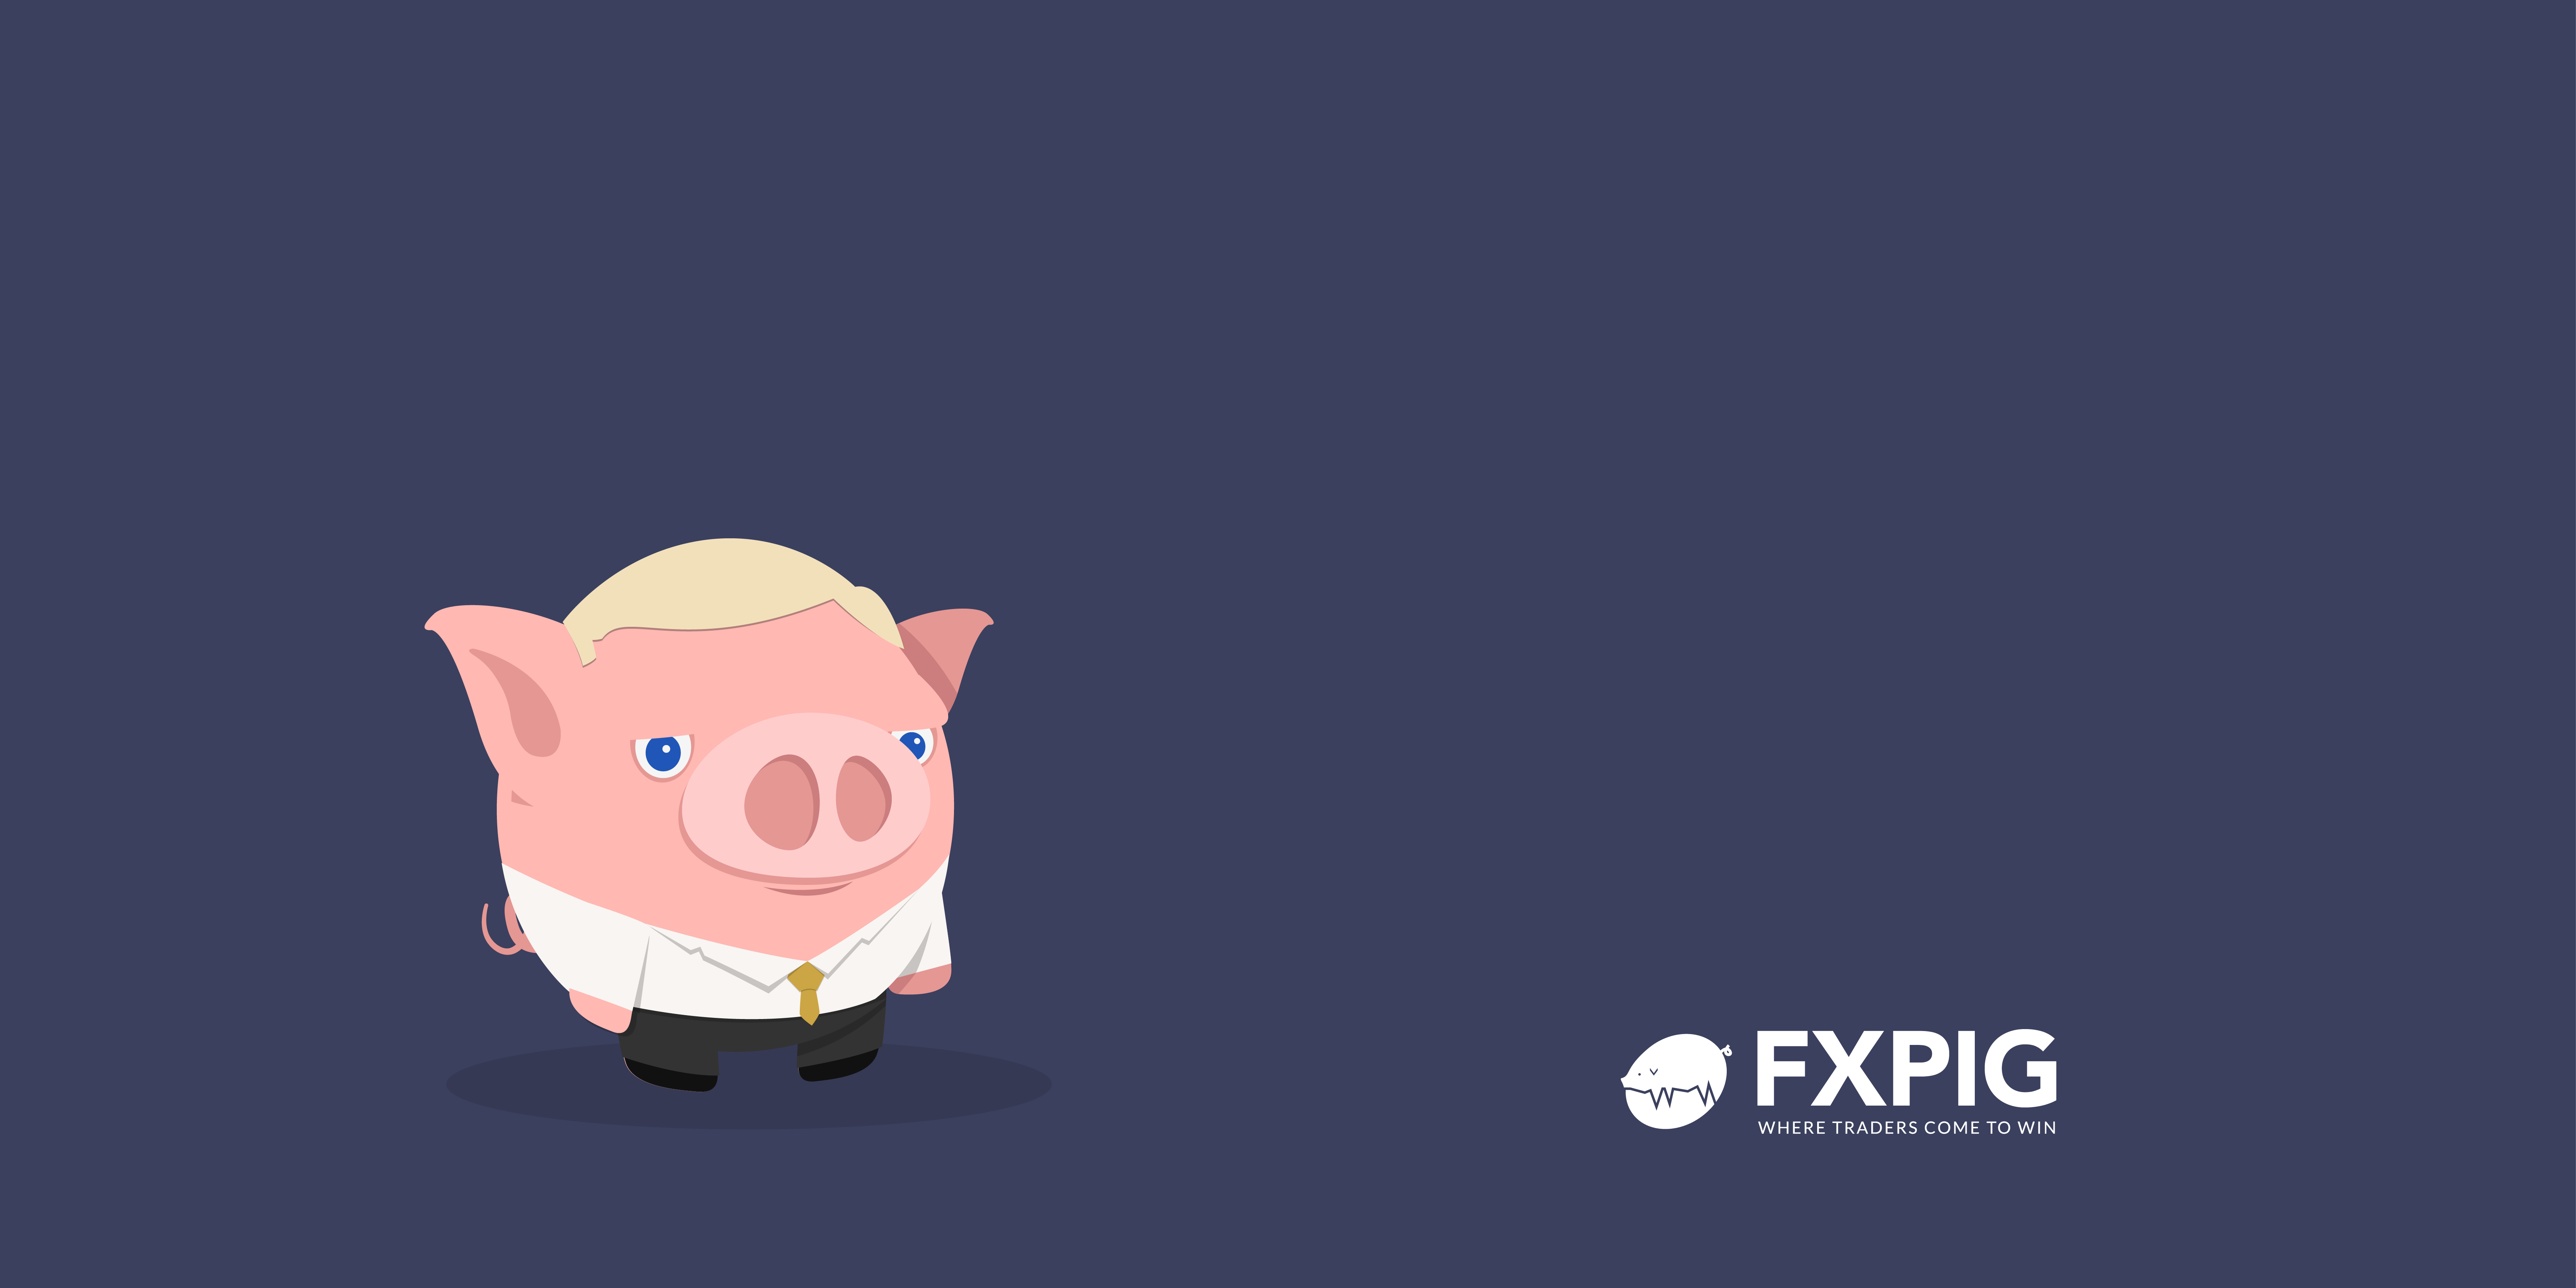 FOREX_Trading-quote_wisdom-Seykota_FXPIG